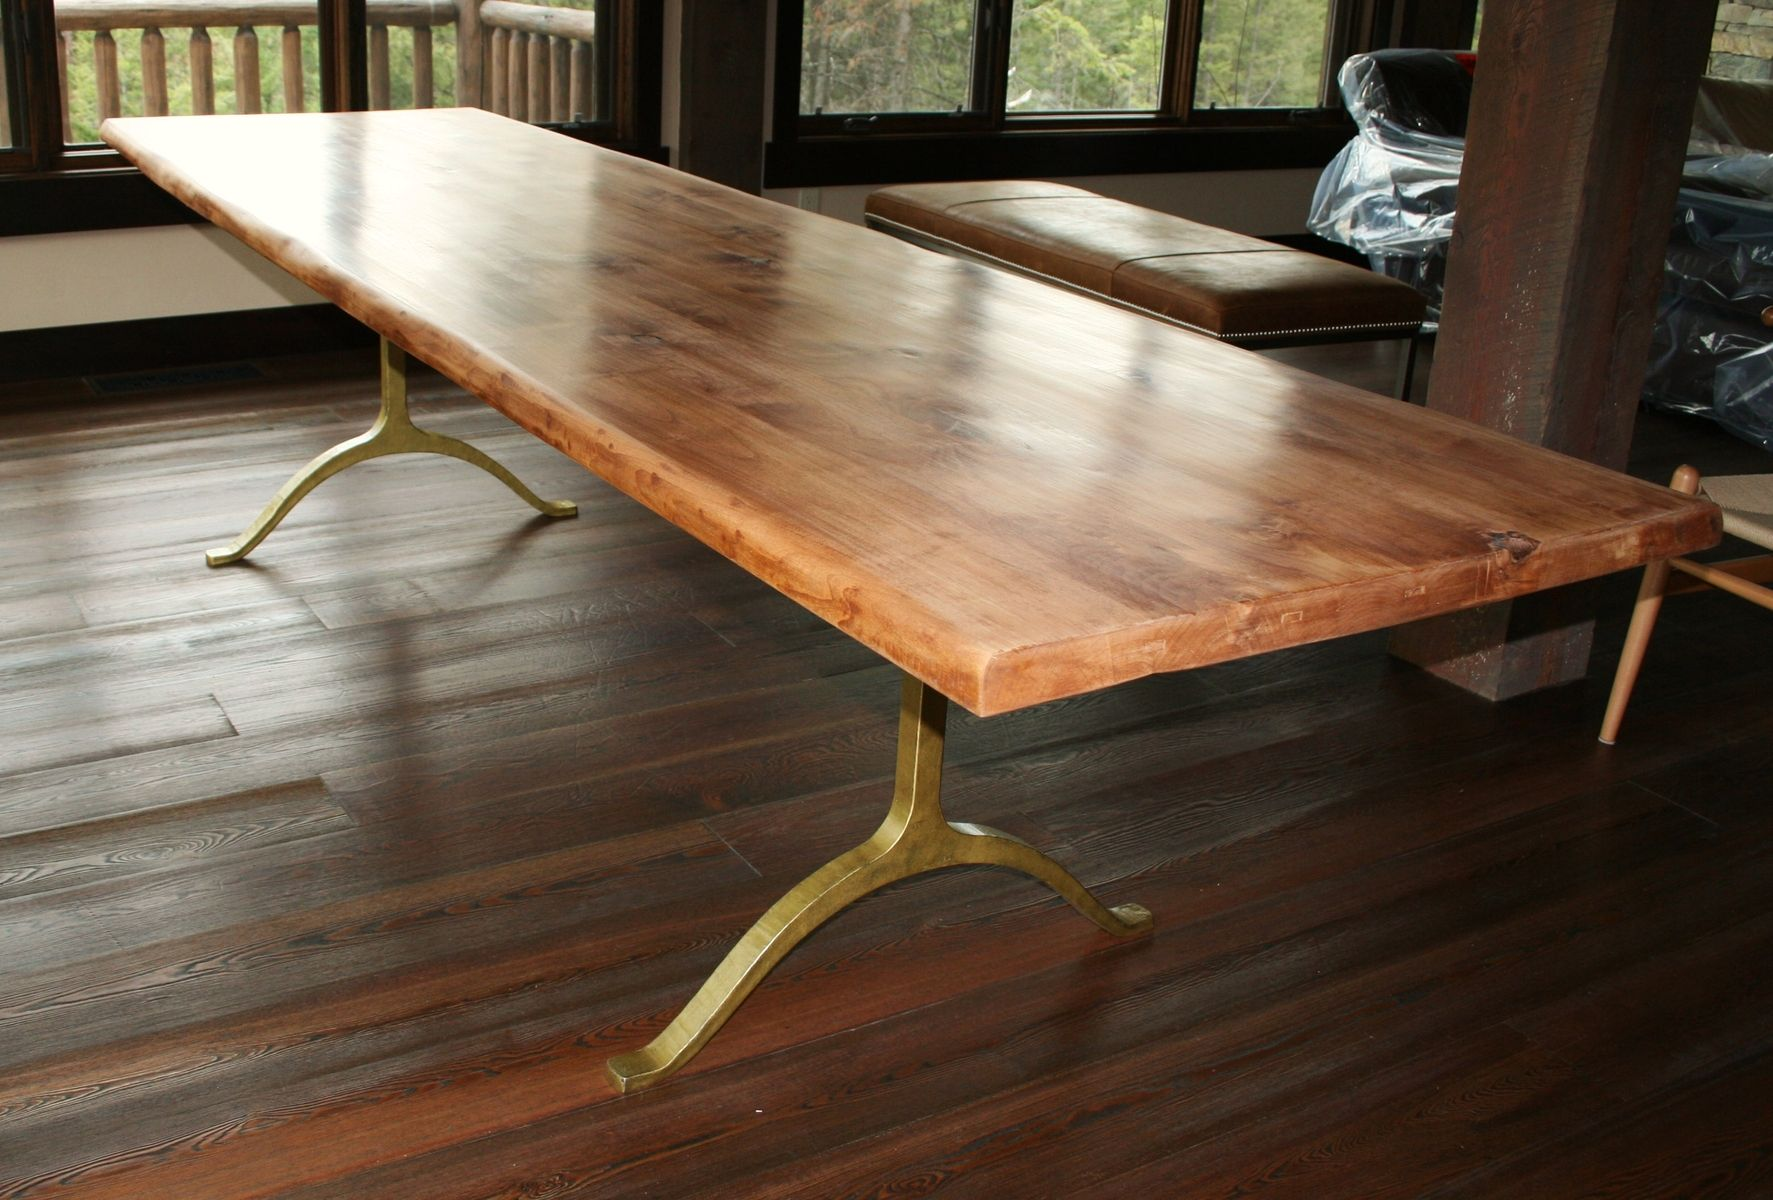 Handmade Rustic Dining Table by Echo Peak Design | CustomMade.com